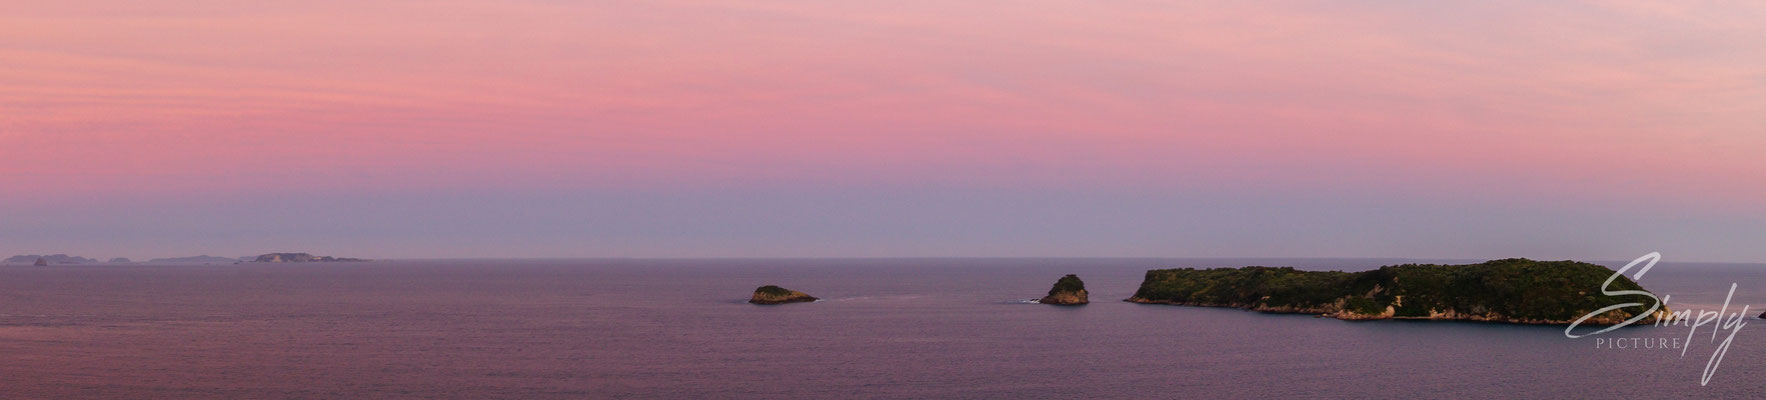 Hahei, Cathedral Cove, Sonnenaufgang mit rot-violettem Himmel, Inseln im Ocean